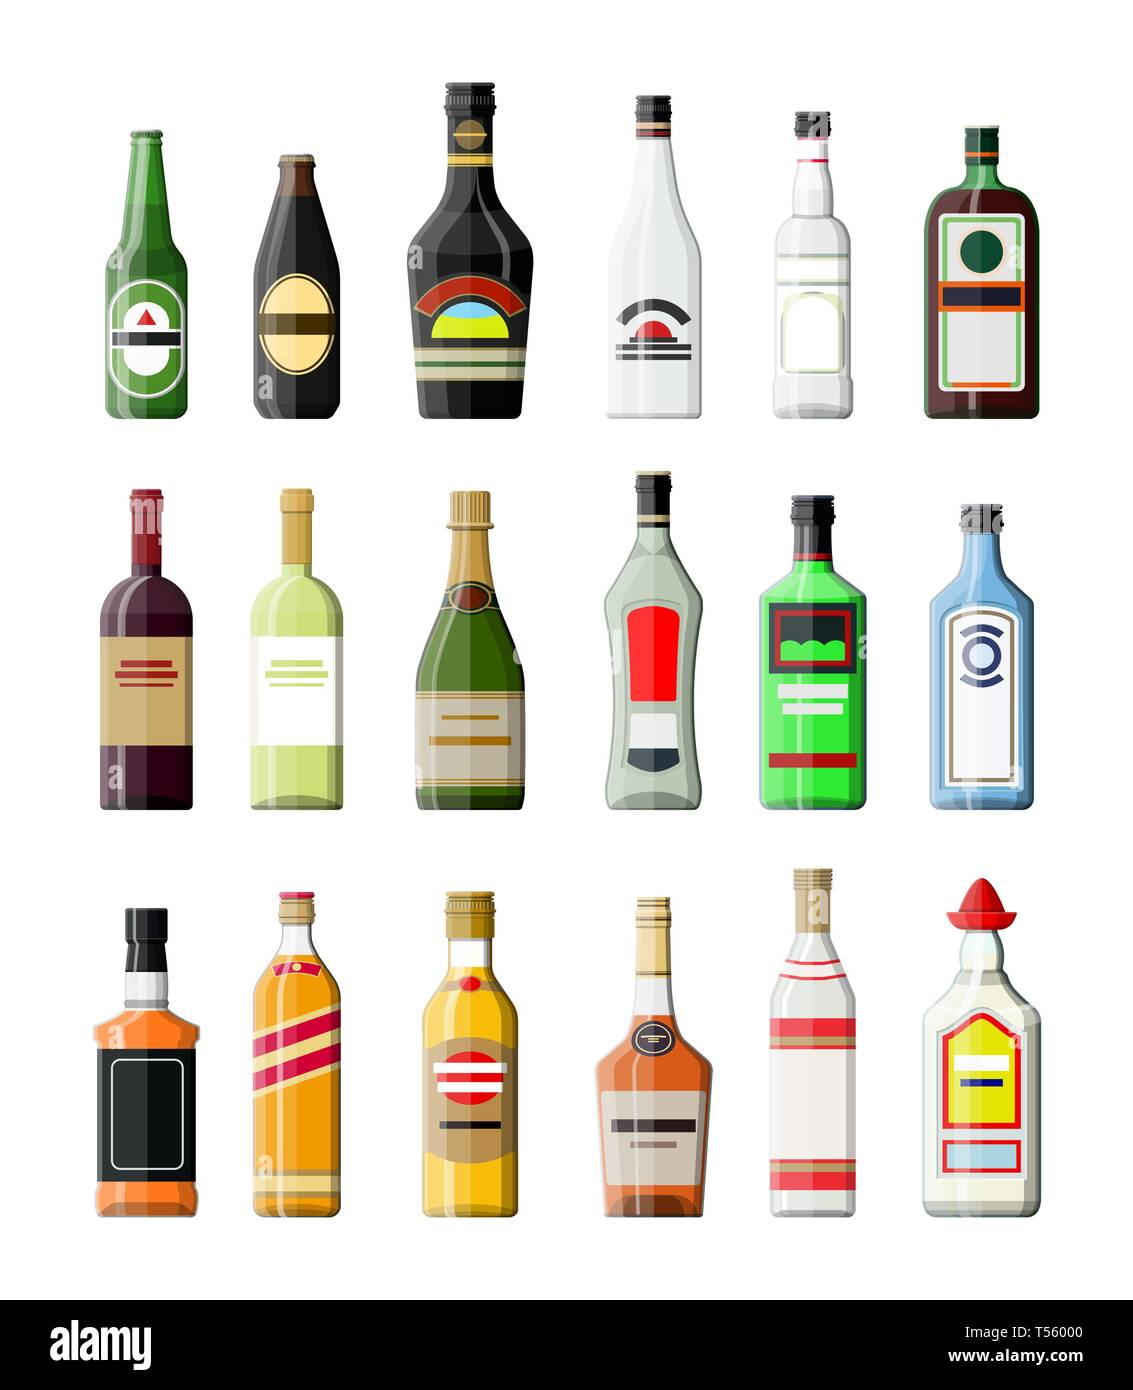 Alcohol drinks collection. Bottles with vodka champagne wine whiskey beer brandy tequila cognac liquor vermouth gin rum absinthe sambuca cider bourbon - Stock Image